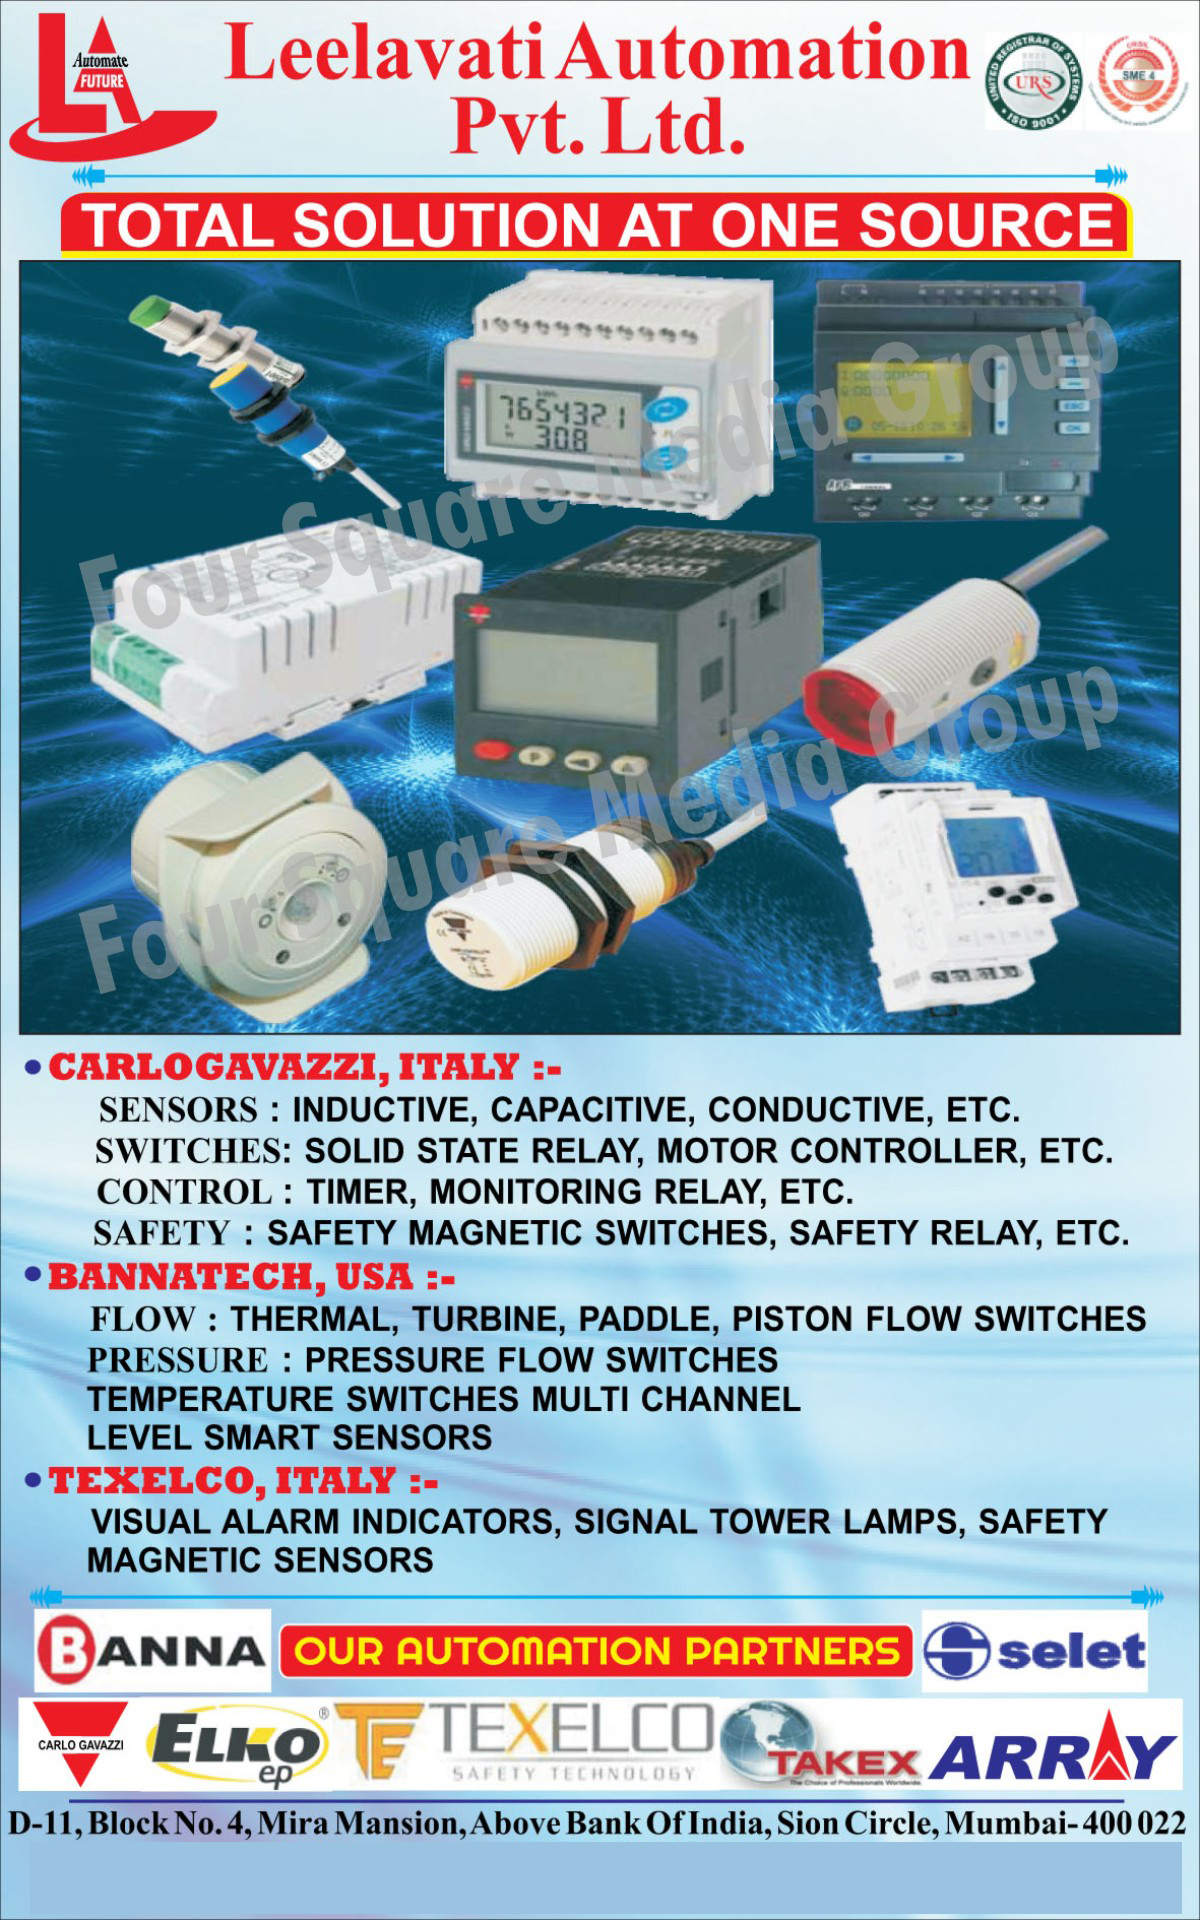 Inductive Sensors Capacitive Conductive Solid State Relay Switch Switches Motor Controller